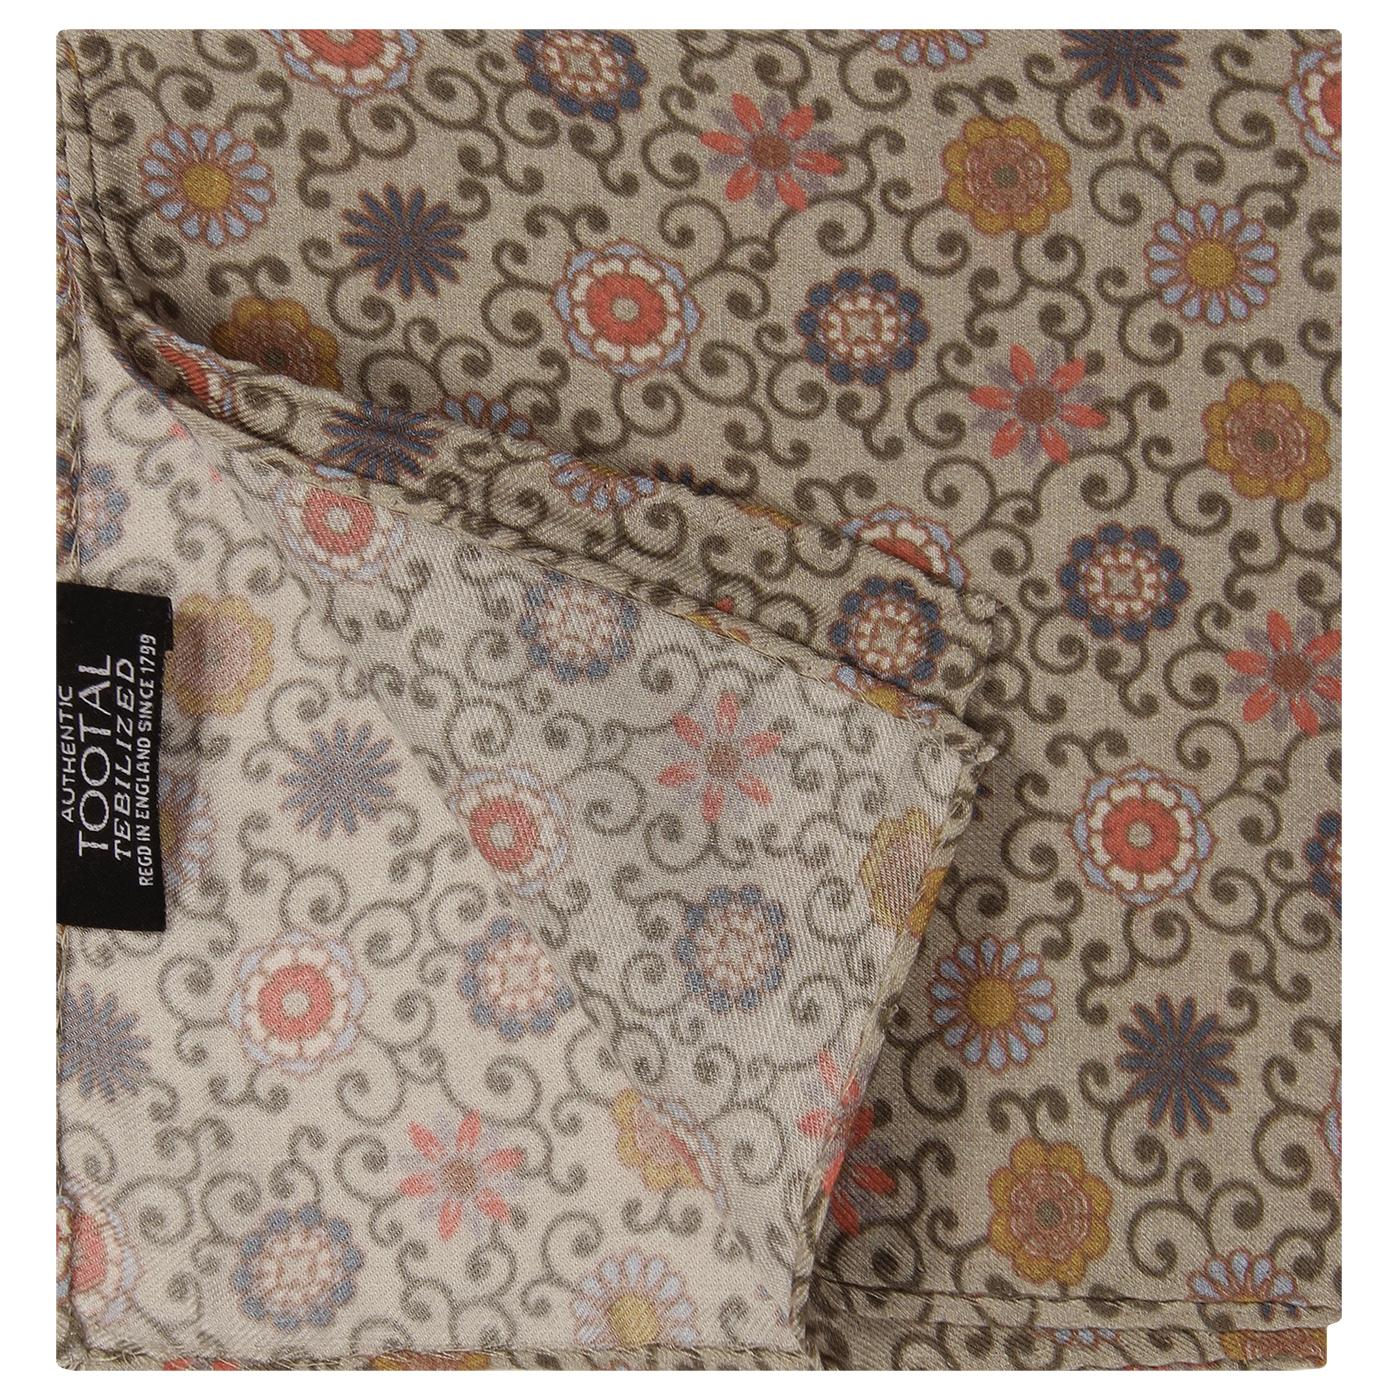 TOOTAL Daisy Chain Retro Floral Pocket Square